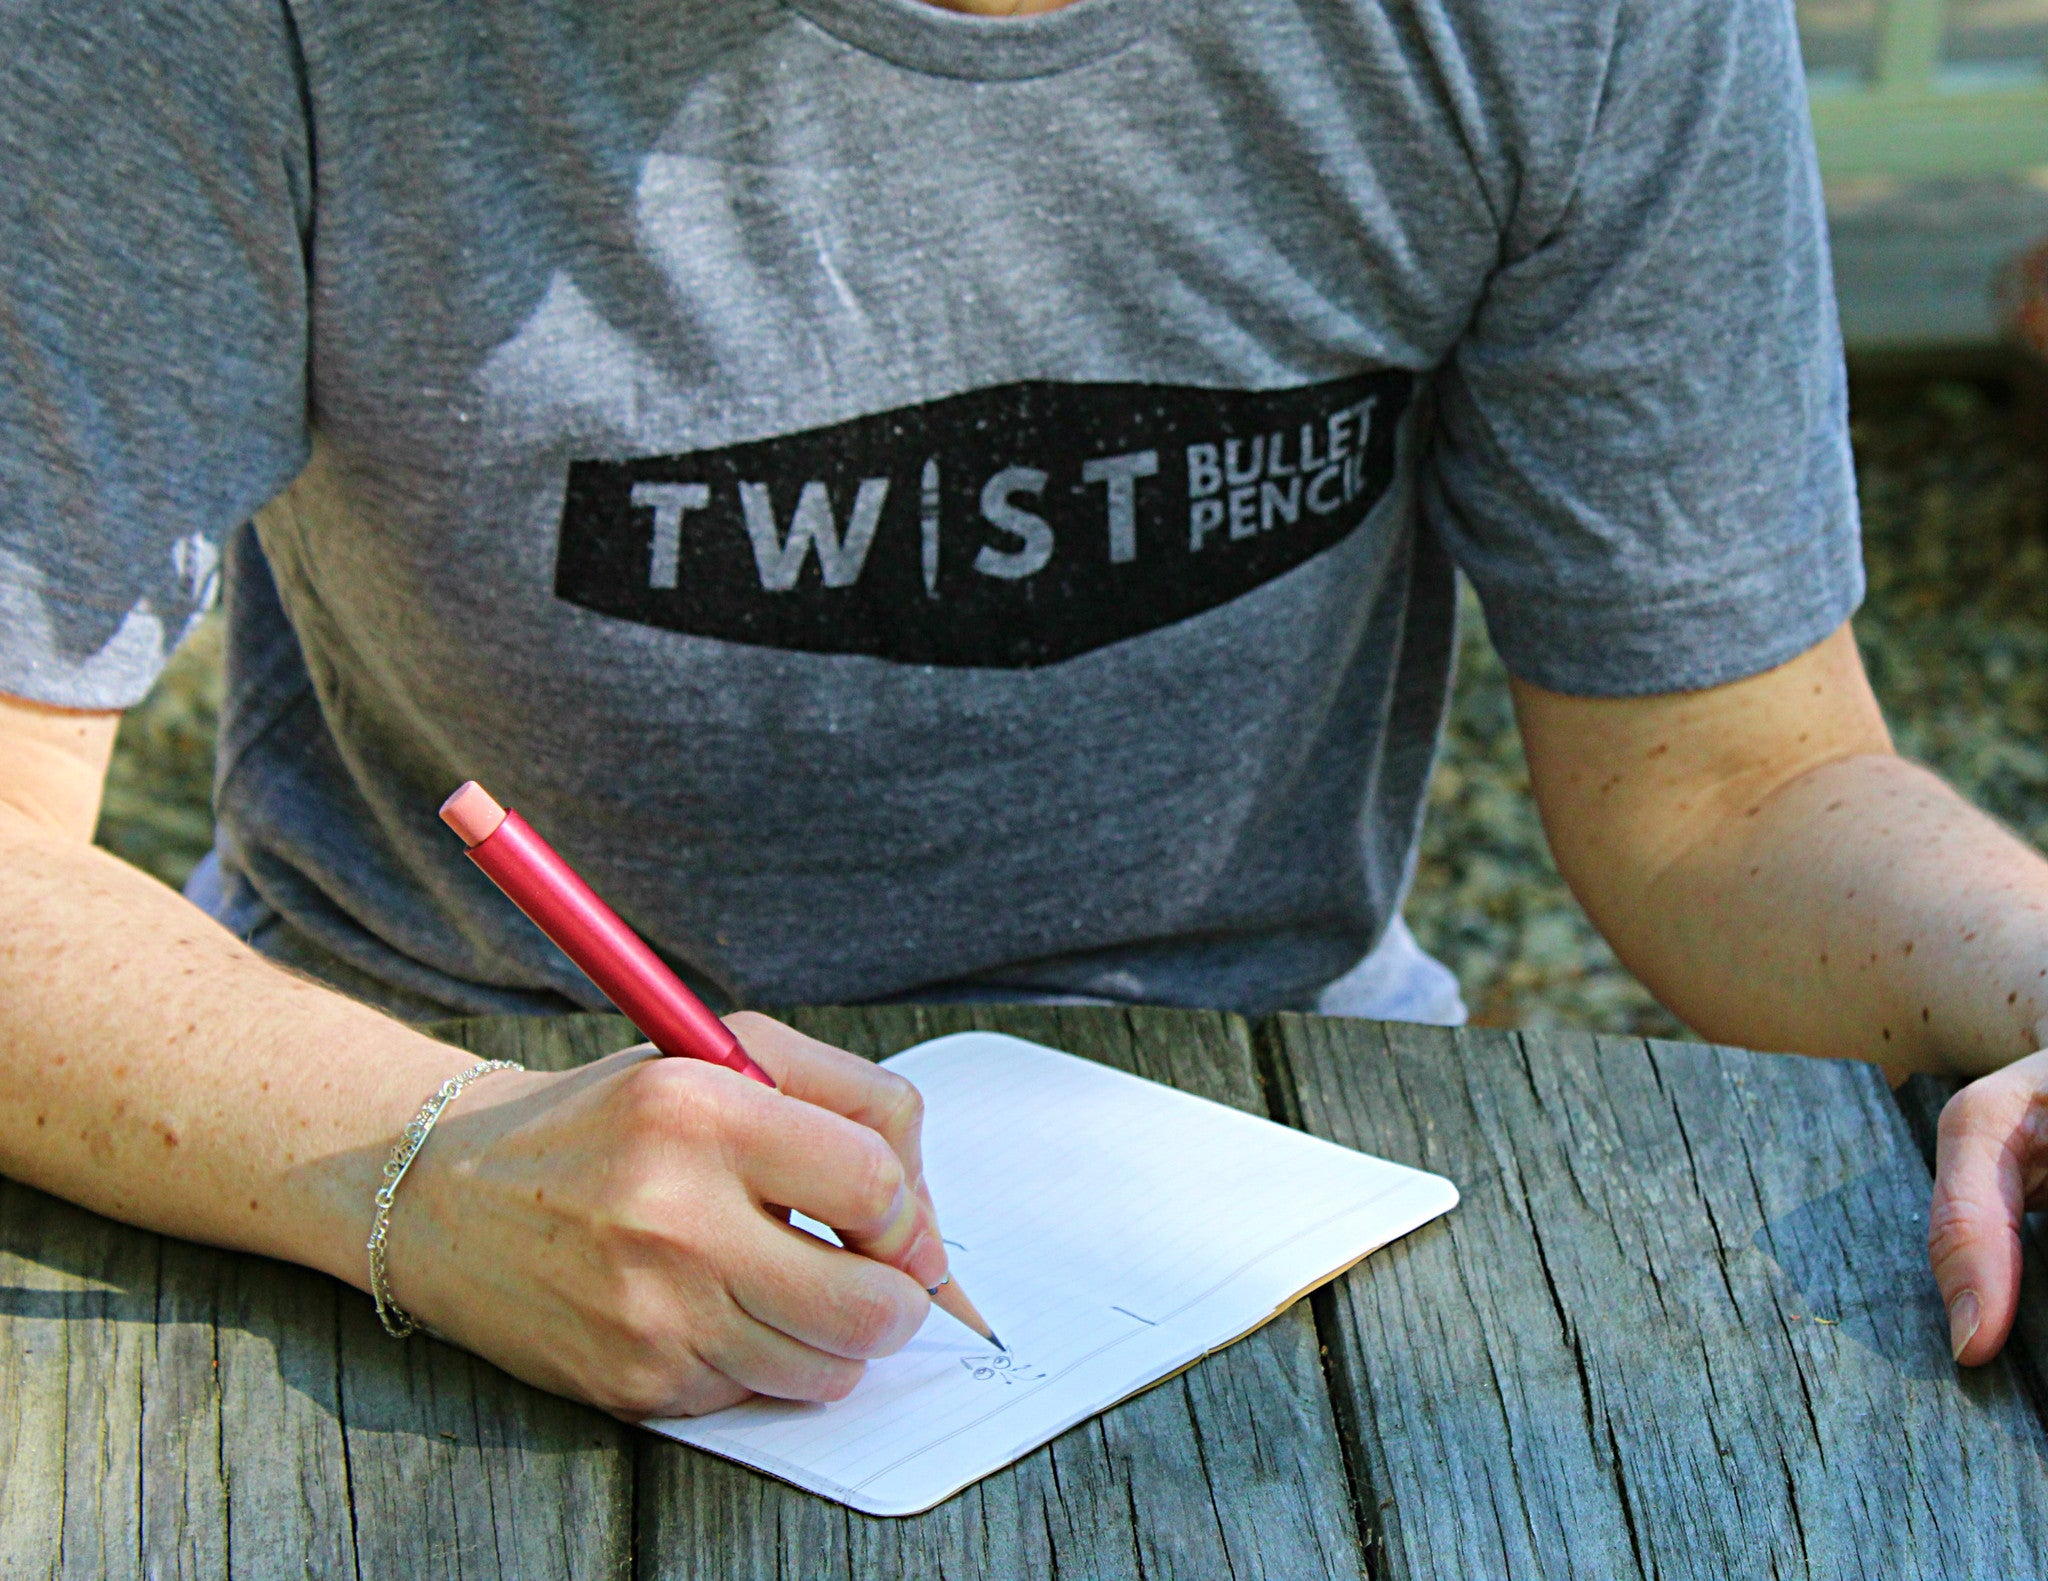 Twist Bullet Pencil T-Shirt